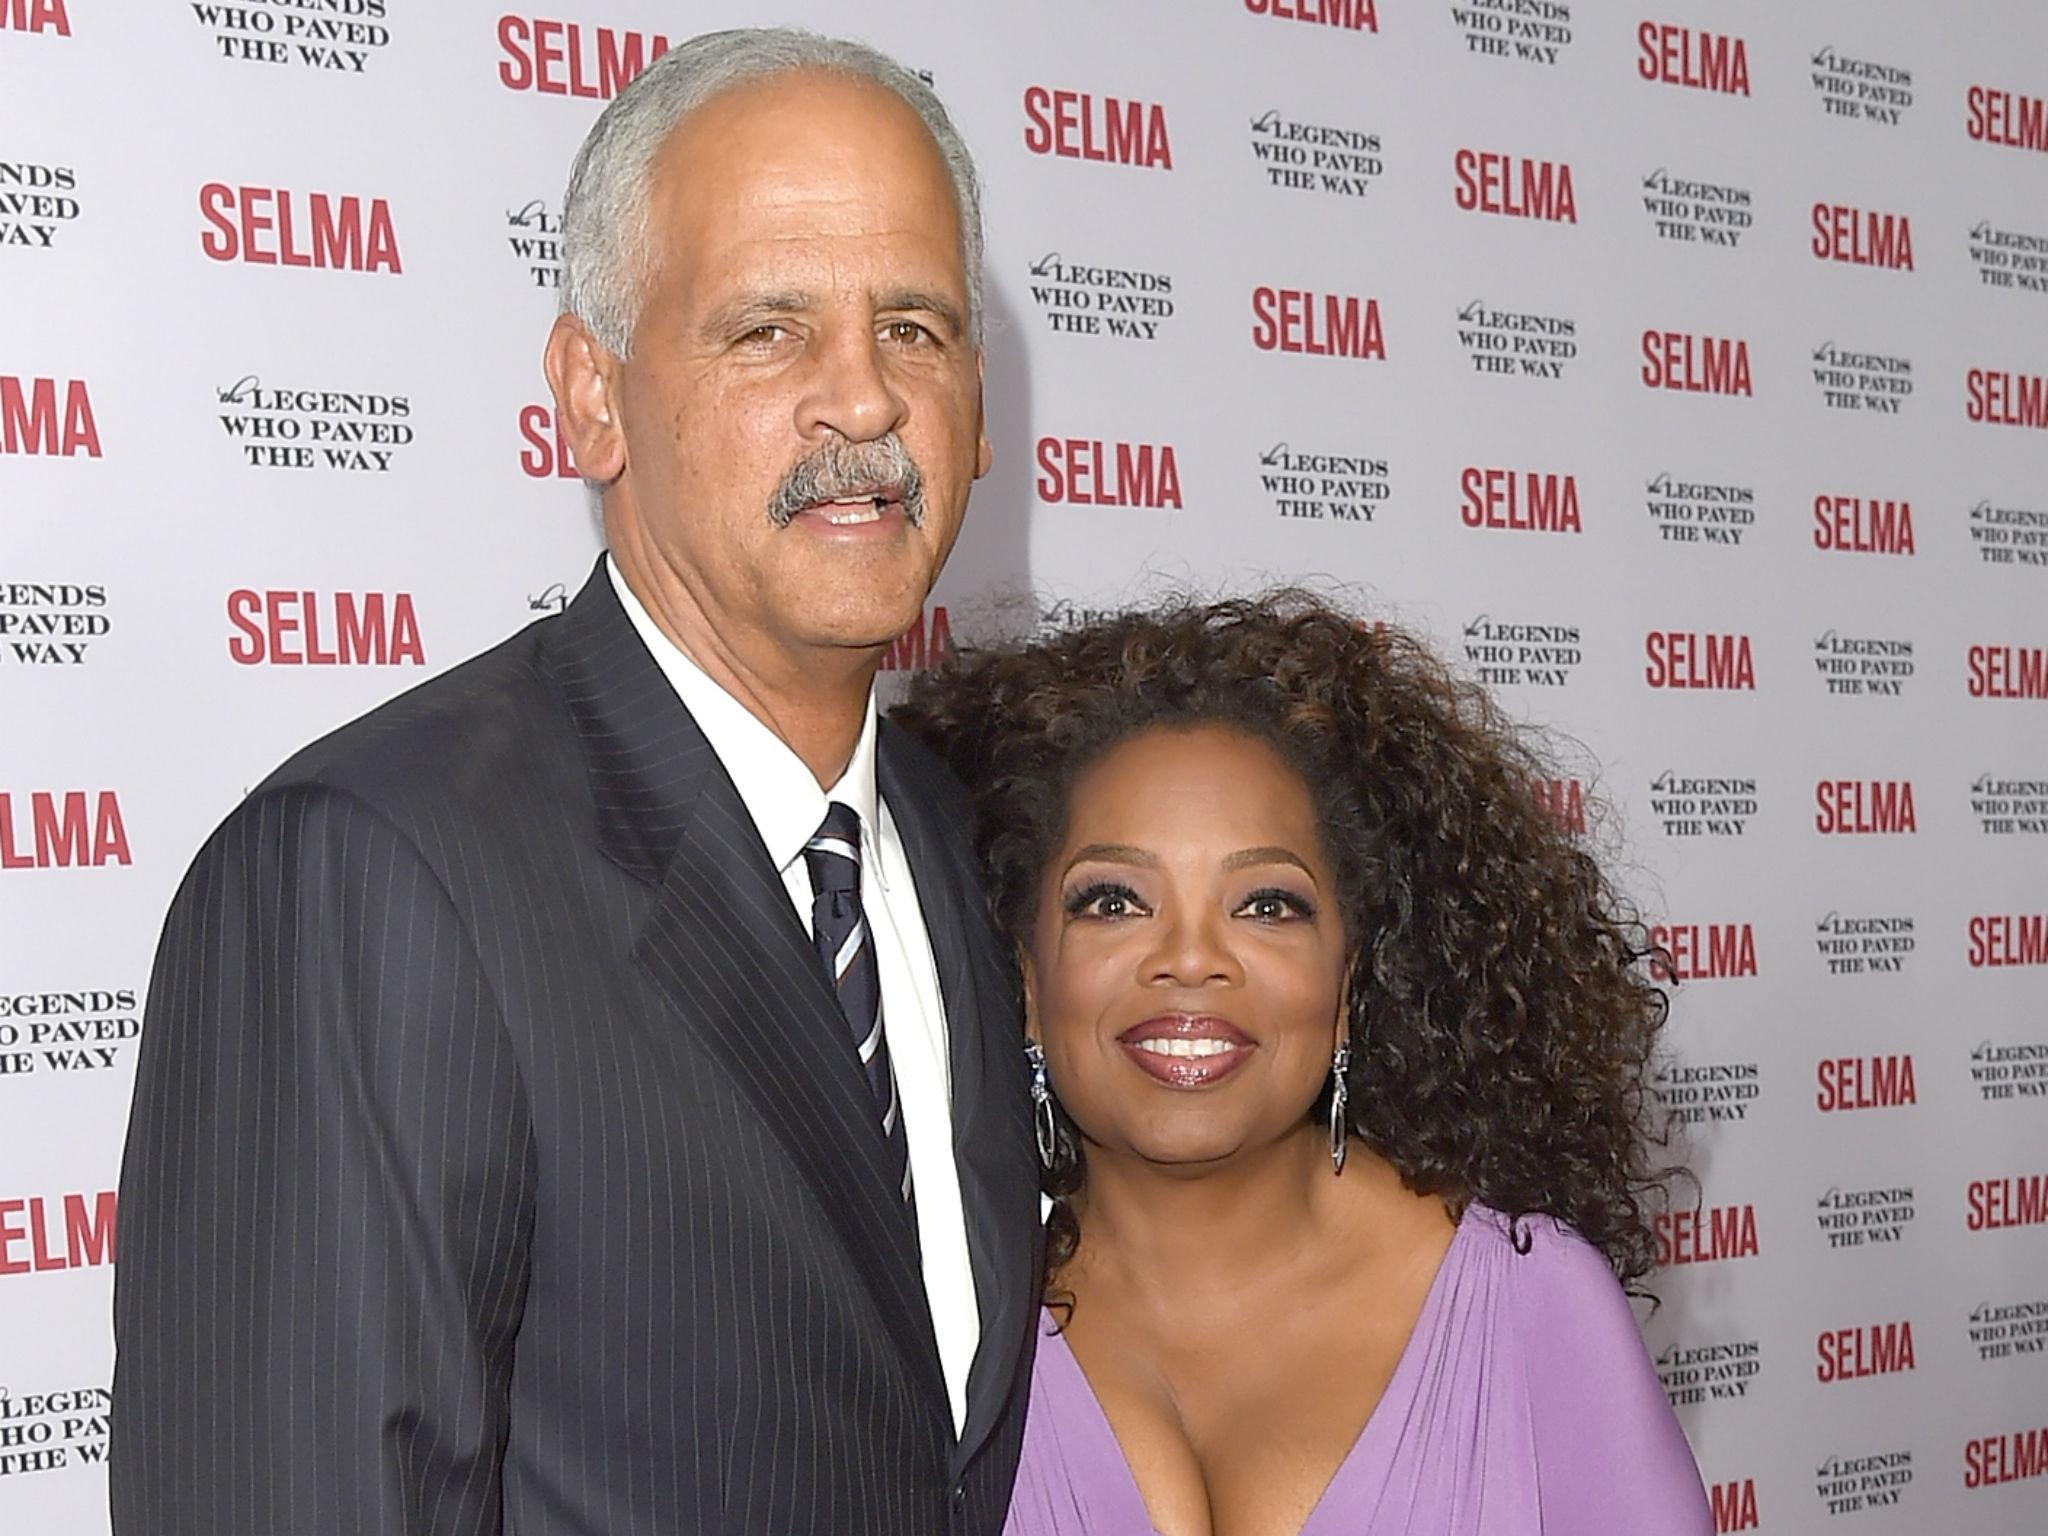 A look inside the relationship of Oprah Winfrey and Stedman Graham, who say avoiding marriage helped them stay together for 32 years